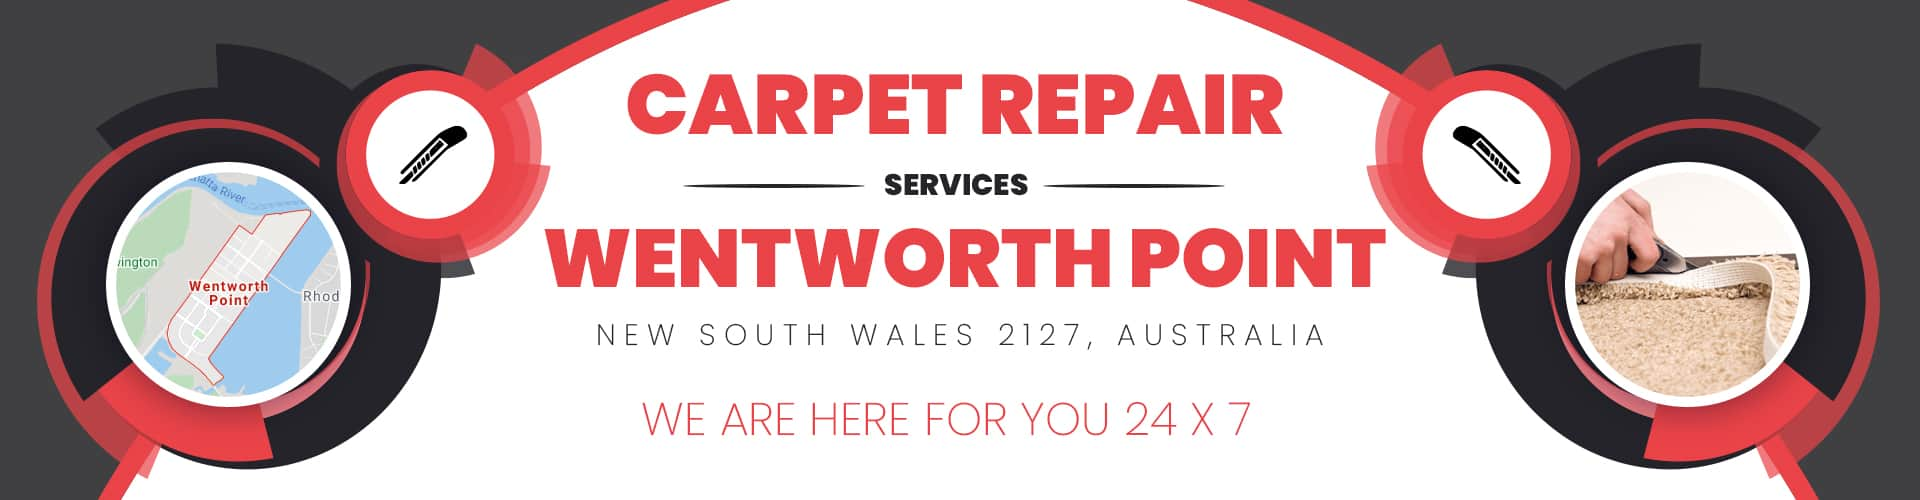 Carpet Repair Wentworth Point